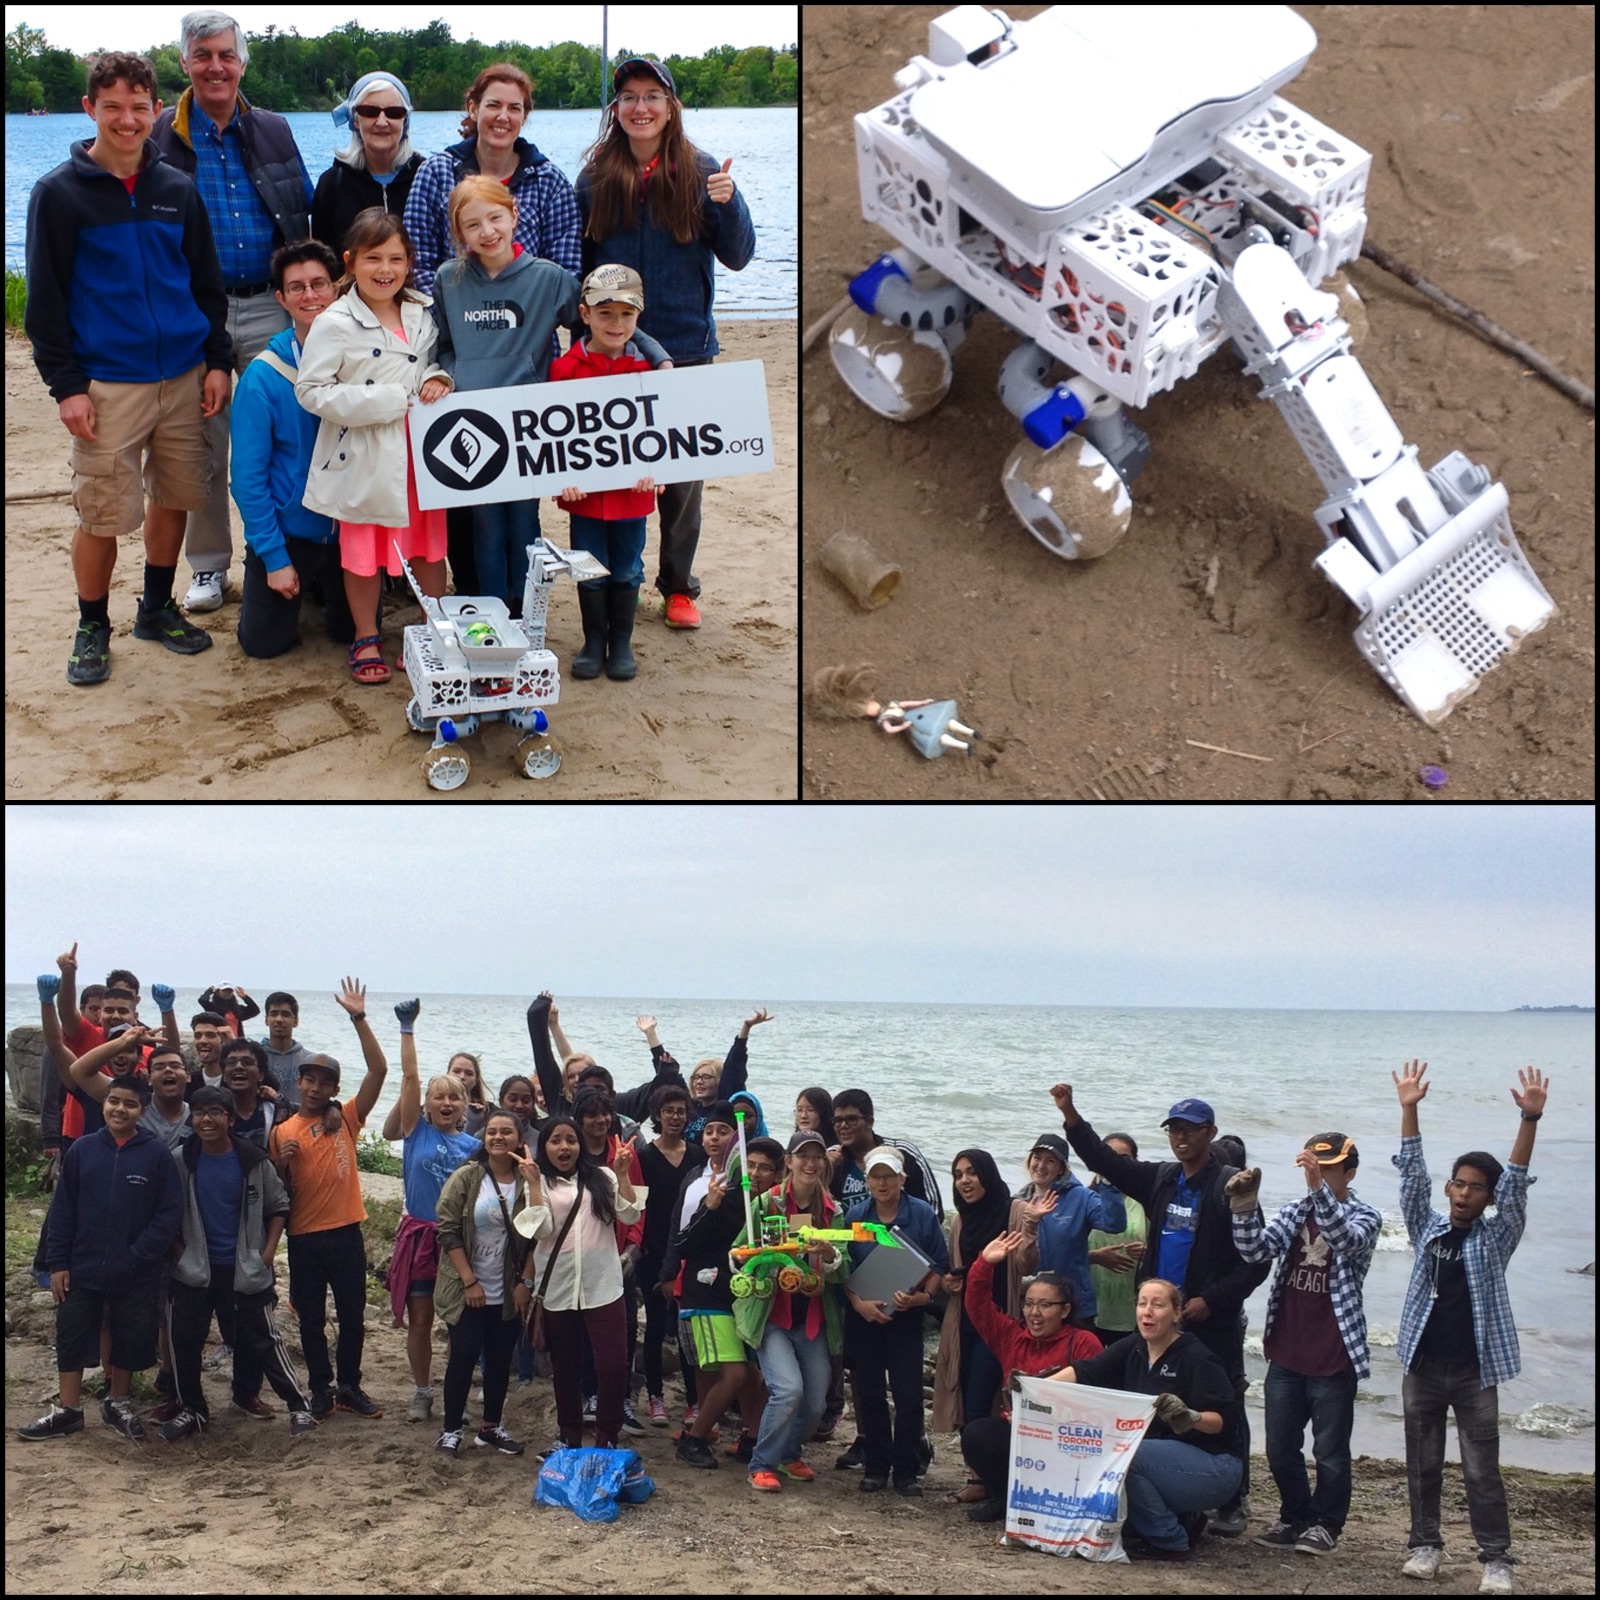 Group photo with the robot on beach